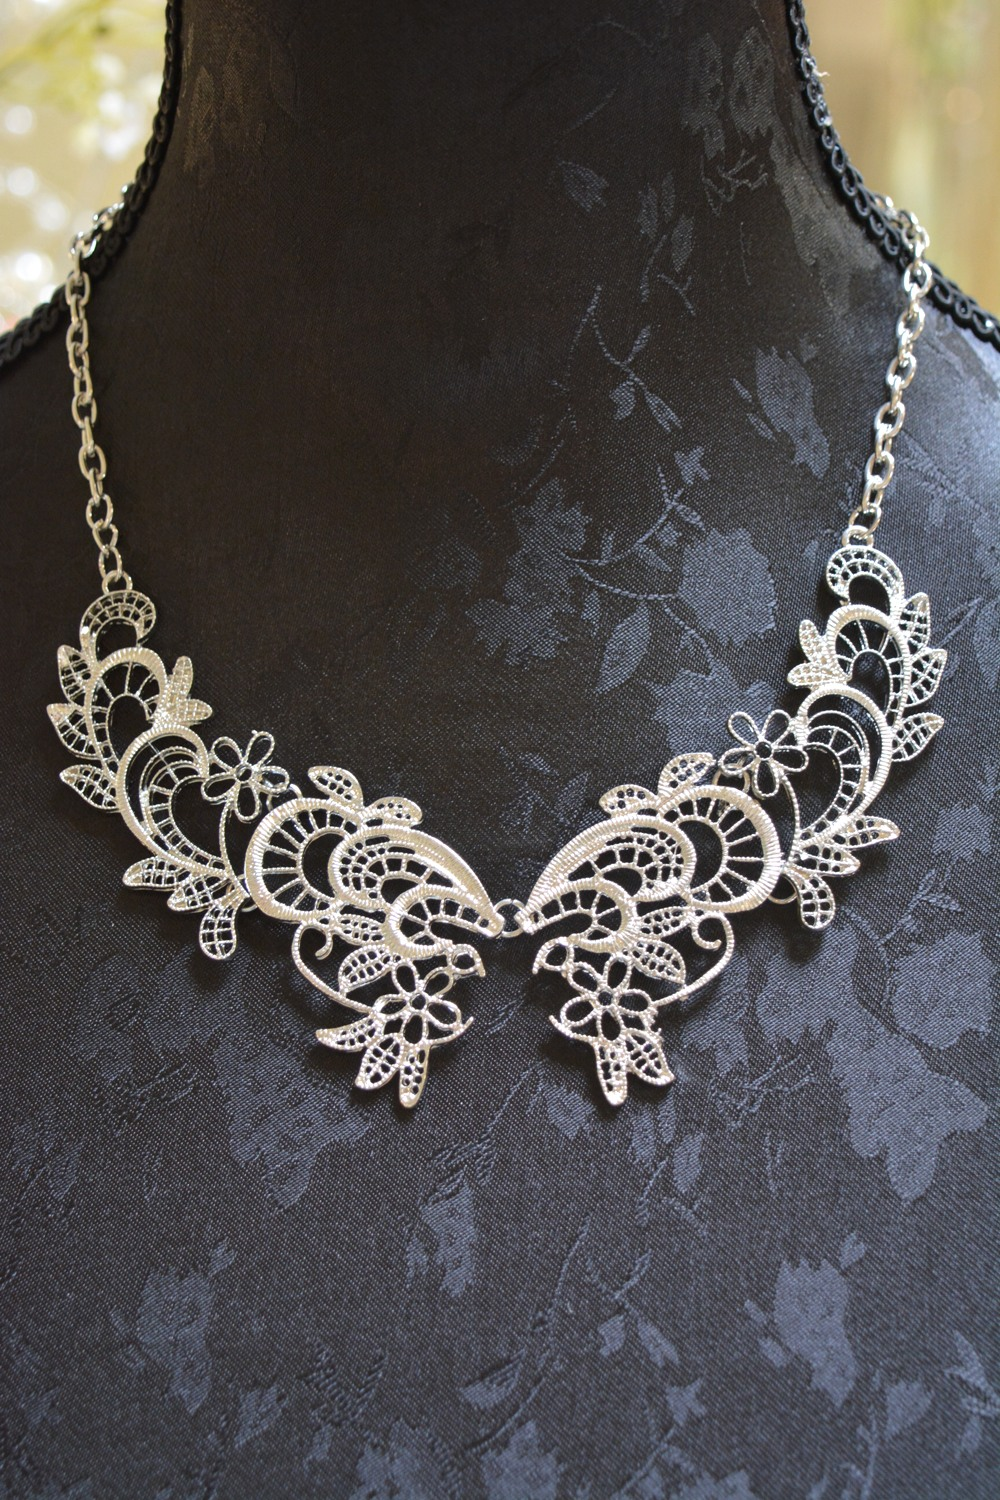 Lace Collar Effect Necklace ~ €15.00